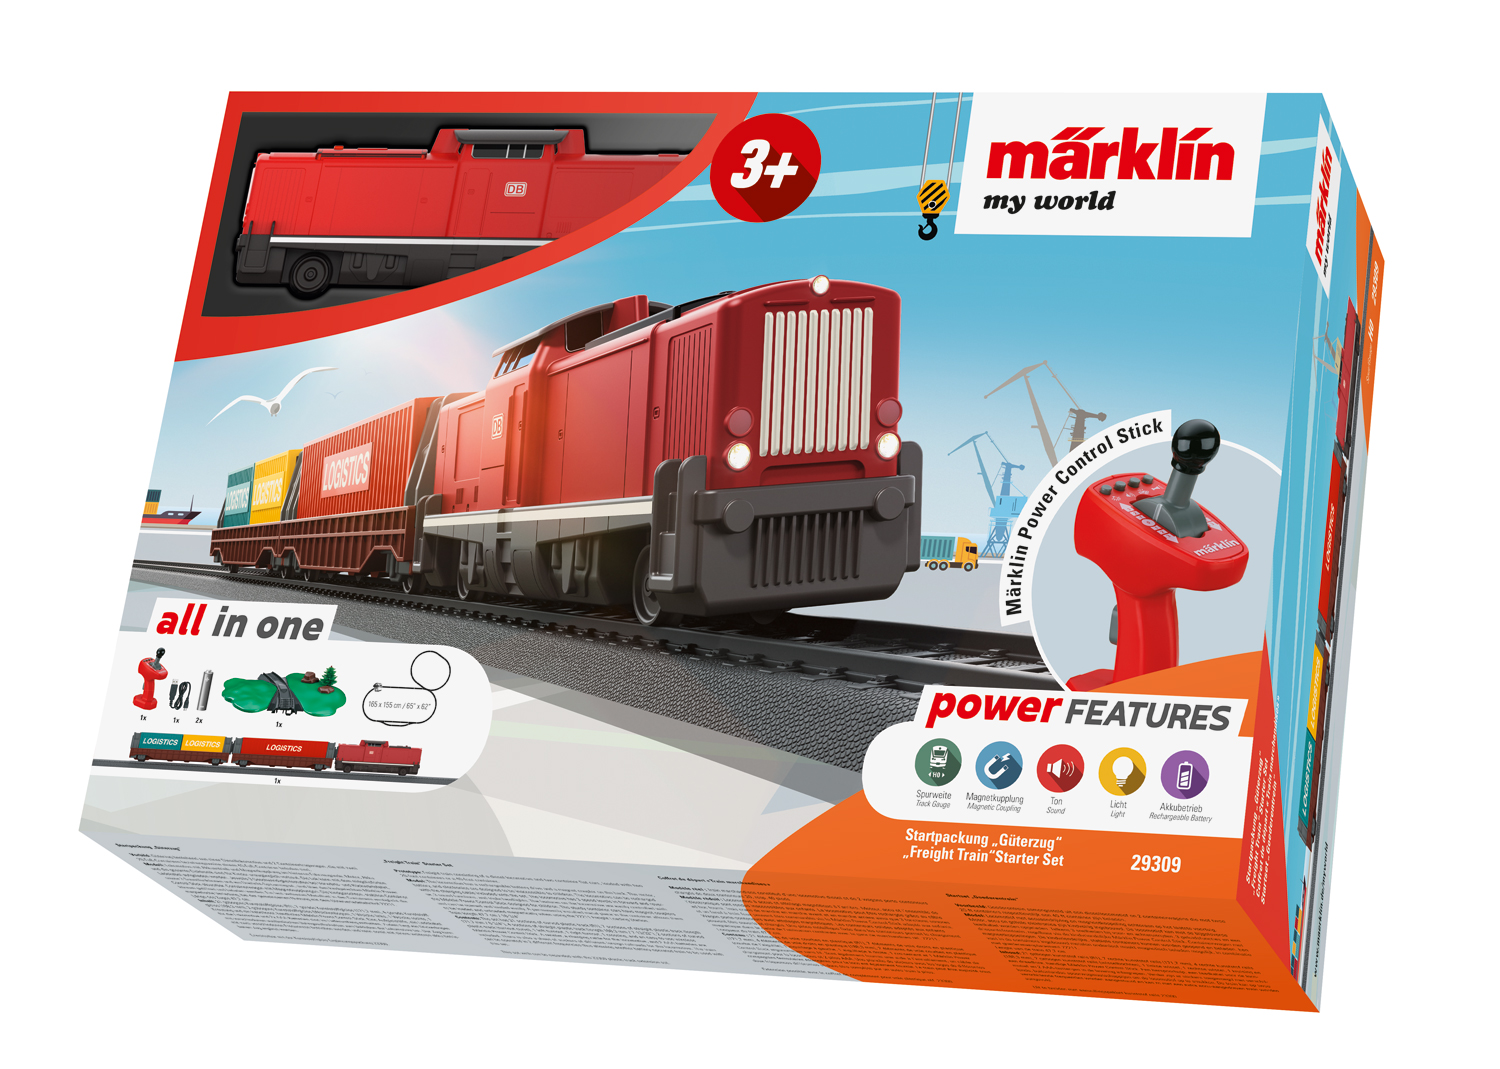 29309 Marklin HO My world Start Set completo Treno Merci scala 1:87